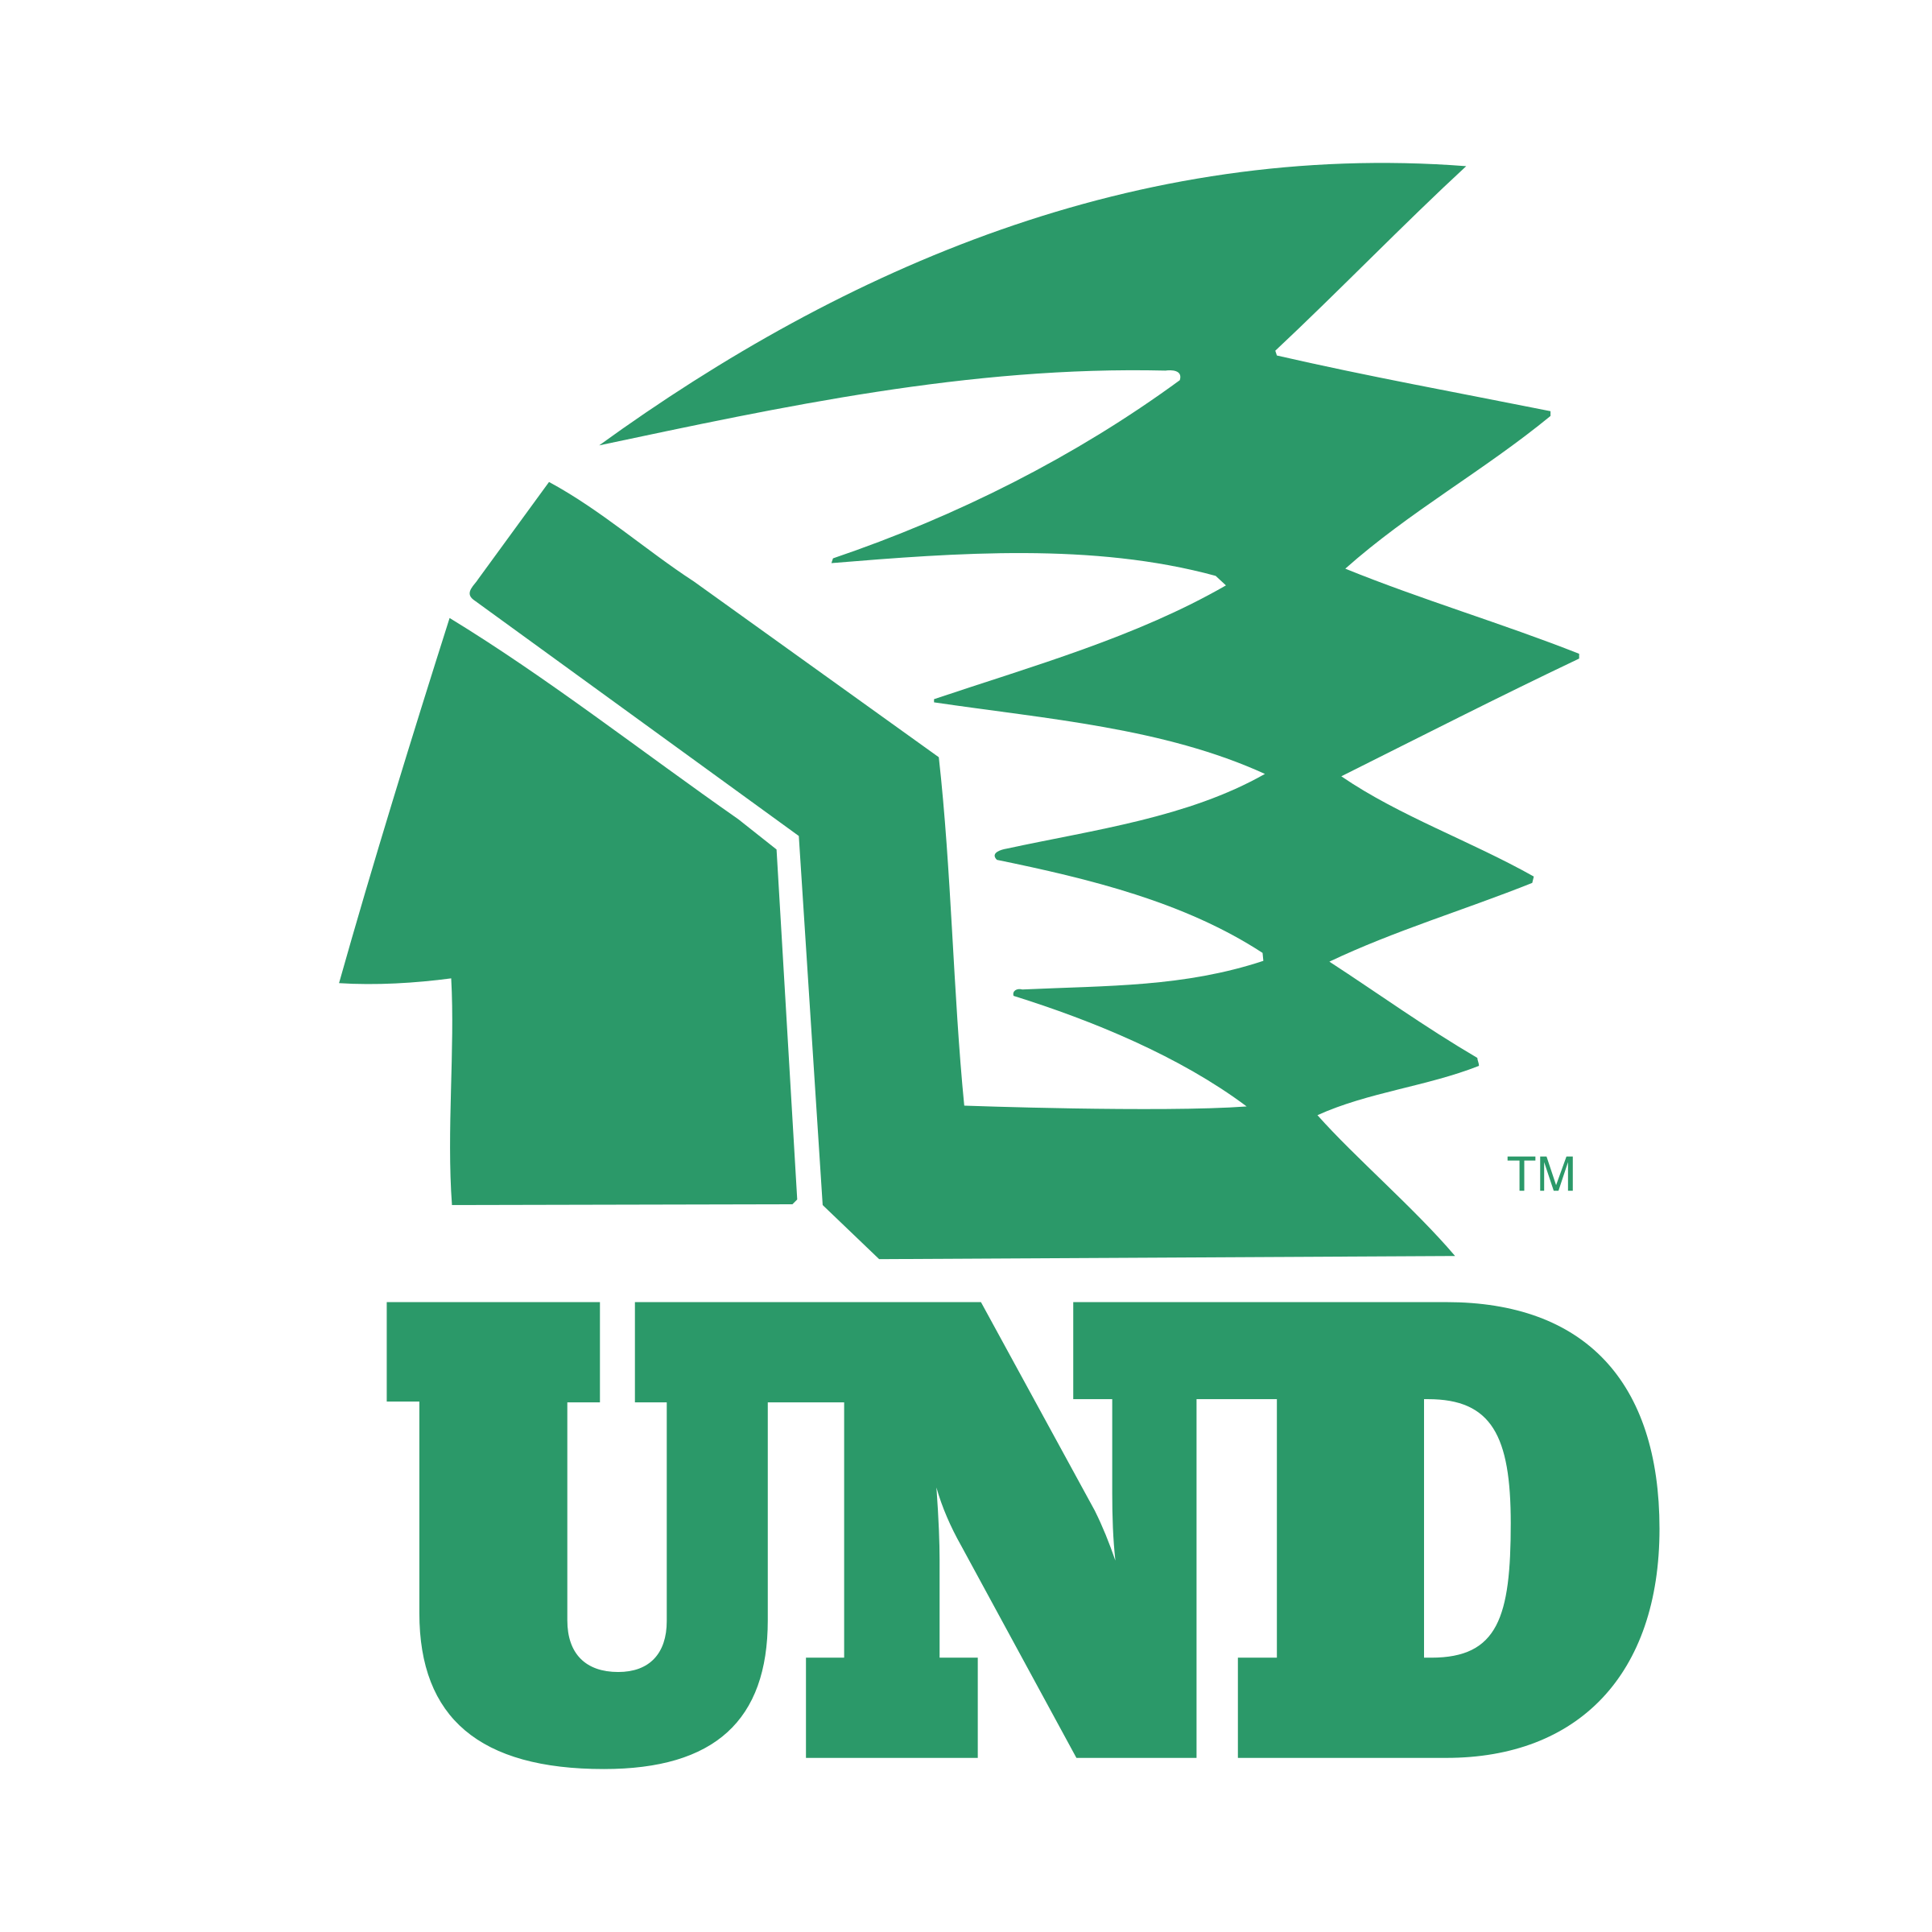 UND Fighting Sioux Logo PNG Transparent & SVG Vector.